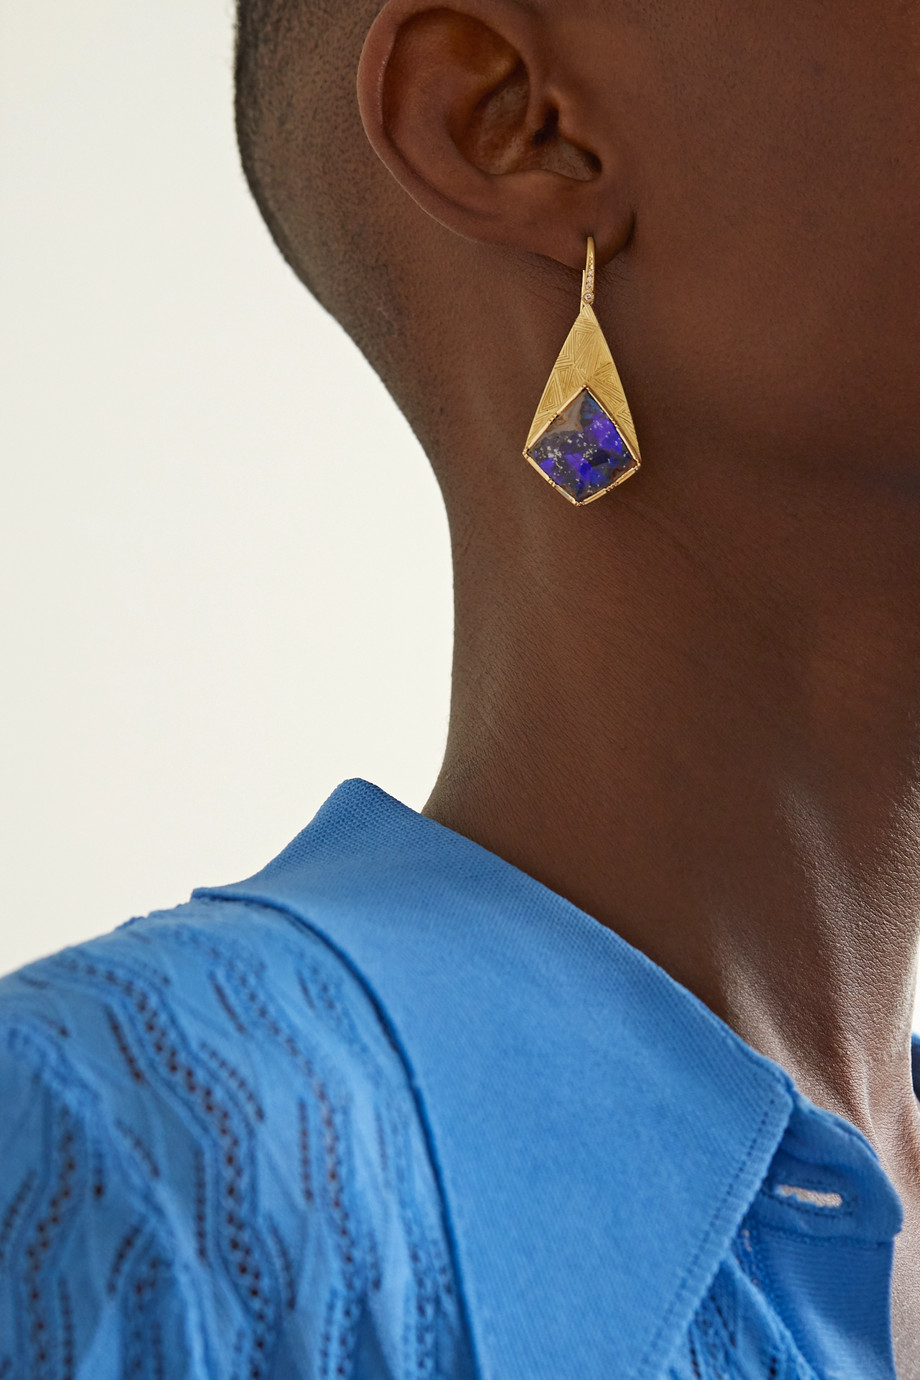 BROOKE GREGSON Nefertiti 18-karat gold, opal and diamond earrings